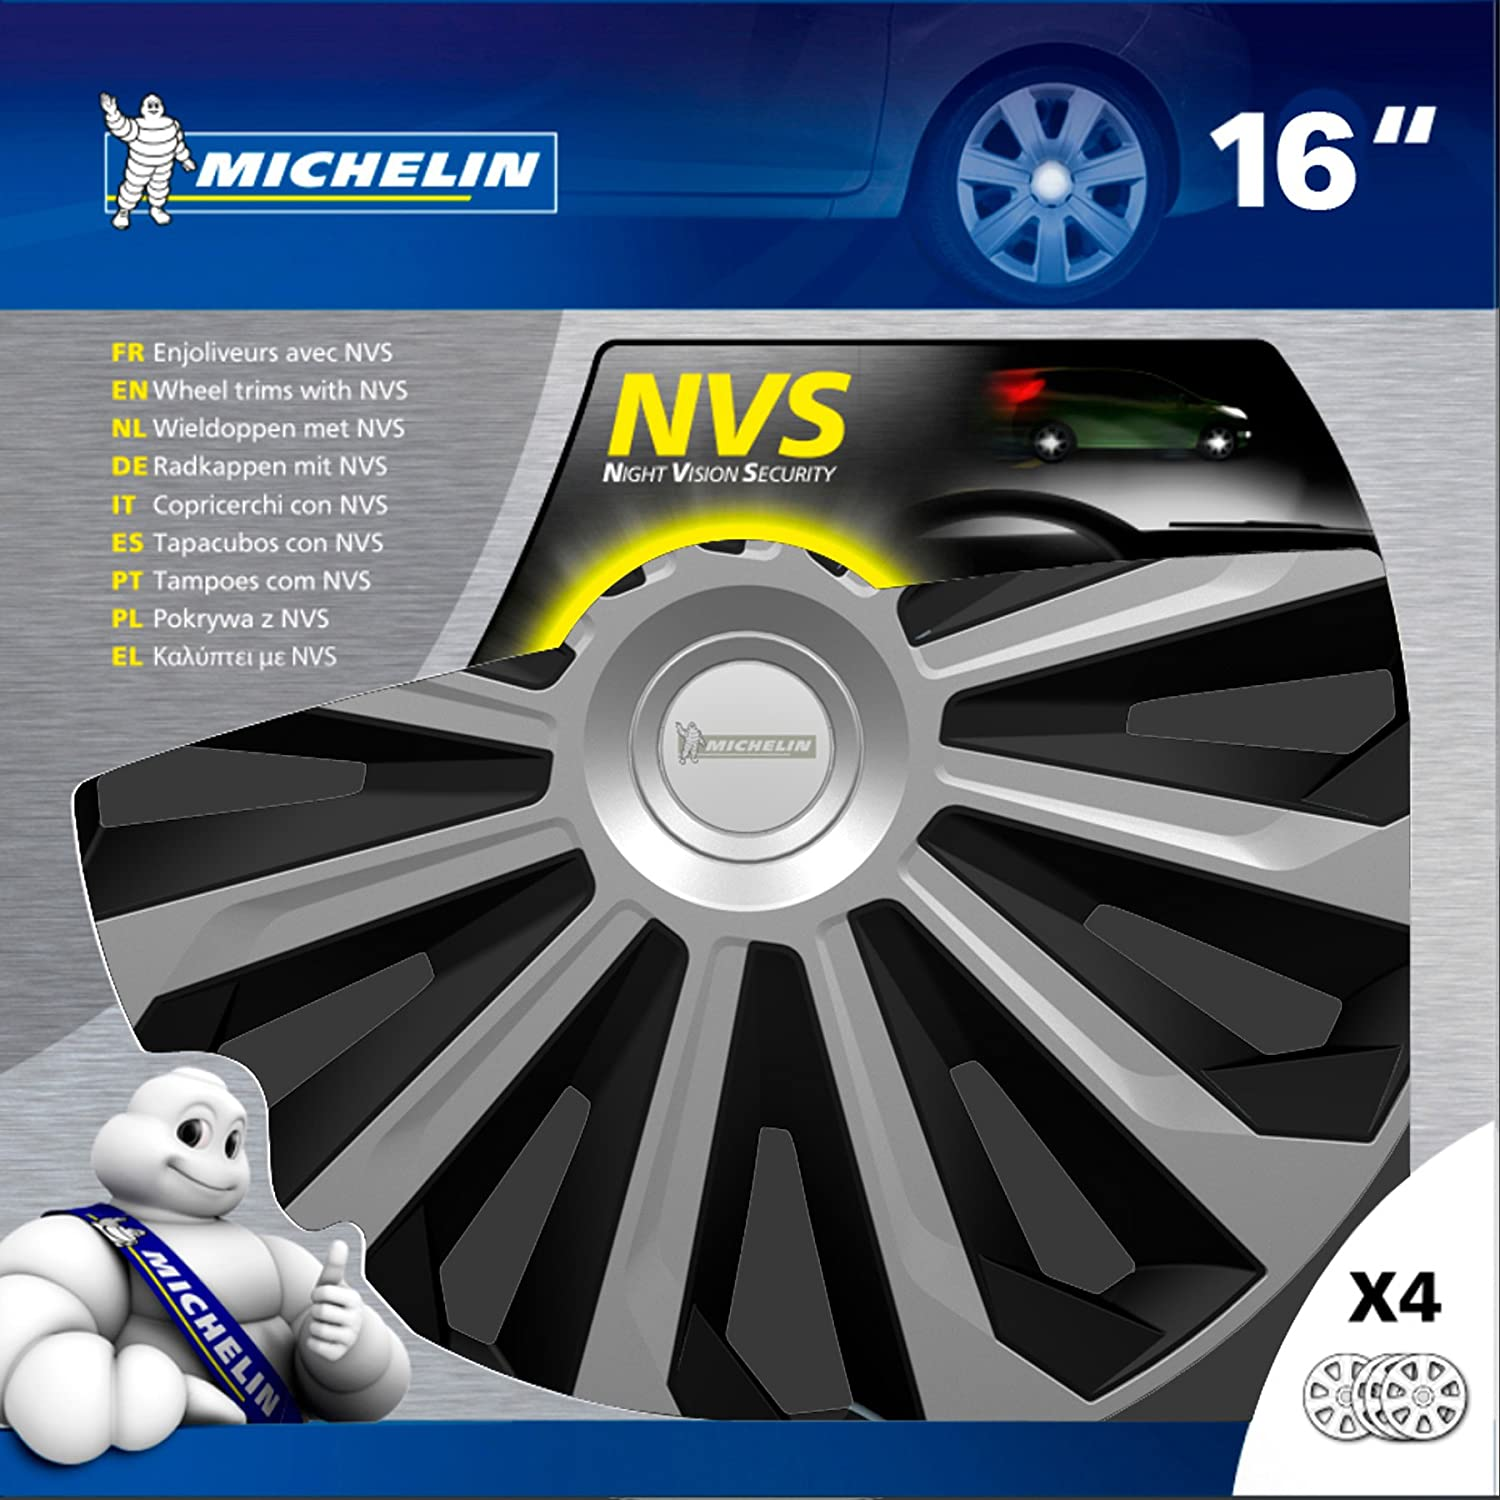 Amazon.com: MICHELIN 009132 Wheel Trims, Two-Tone, 16